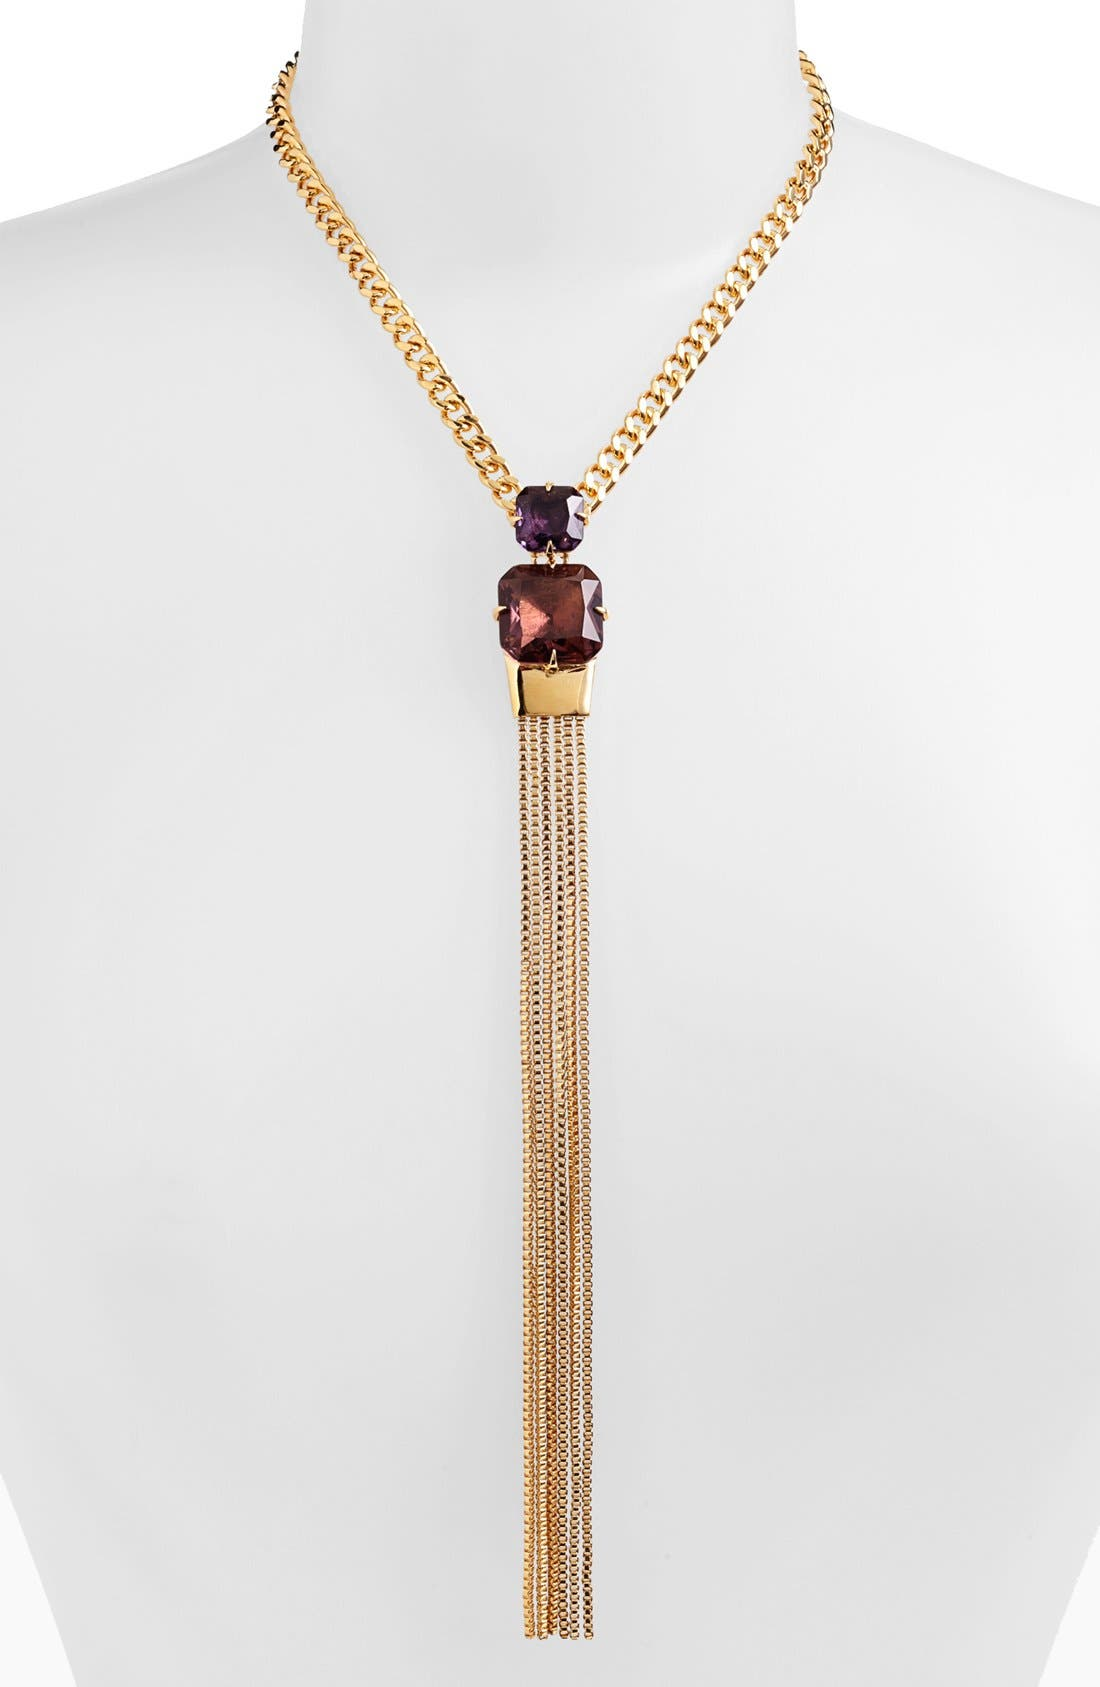 Main Image - Vince Camuto 'Jewel Purpose' Stone Tassel Pendant Necklace